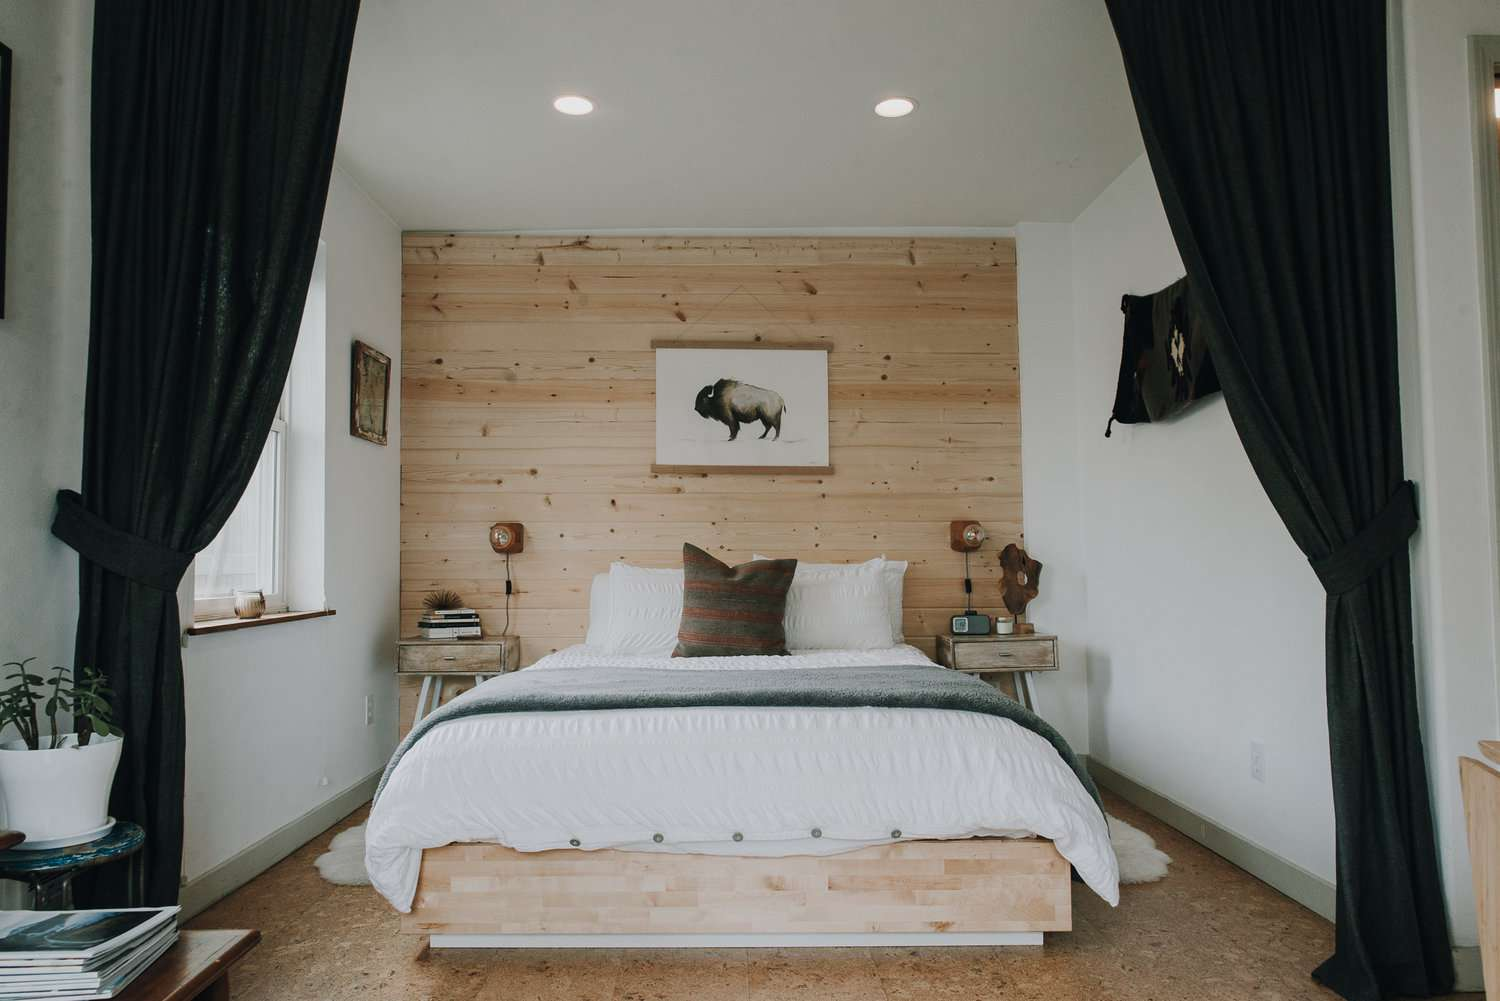 A wood-paneled bedroom with a wood-paneled bed